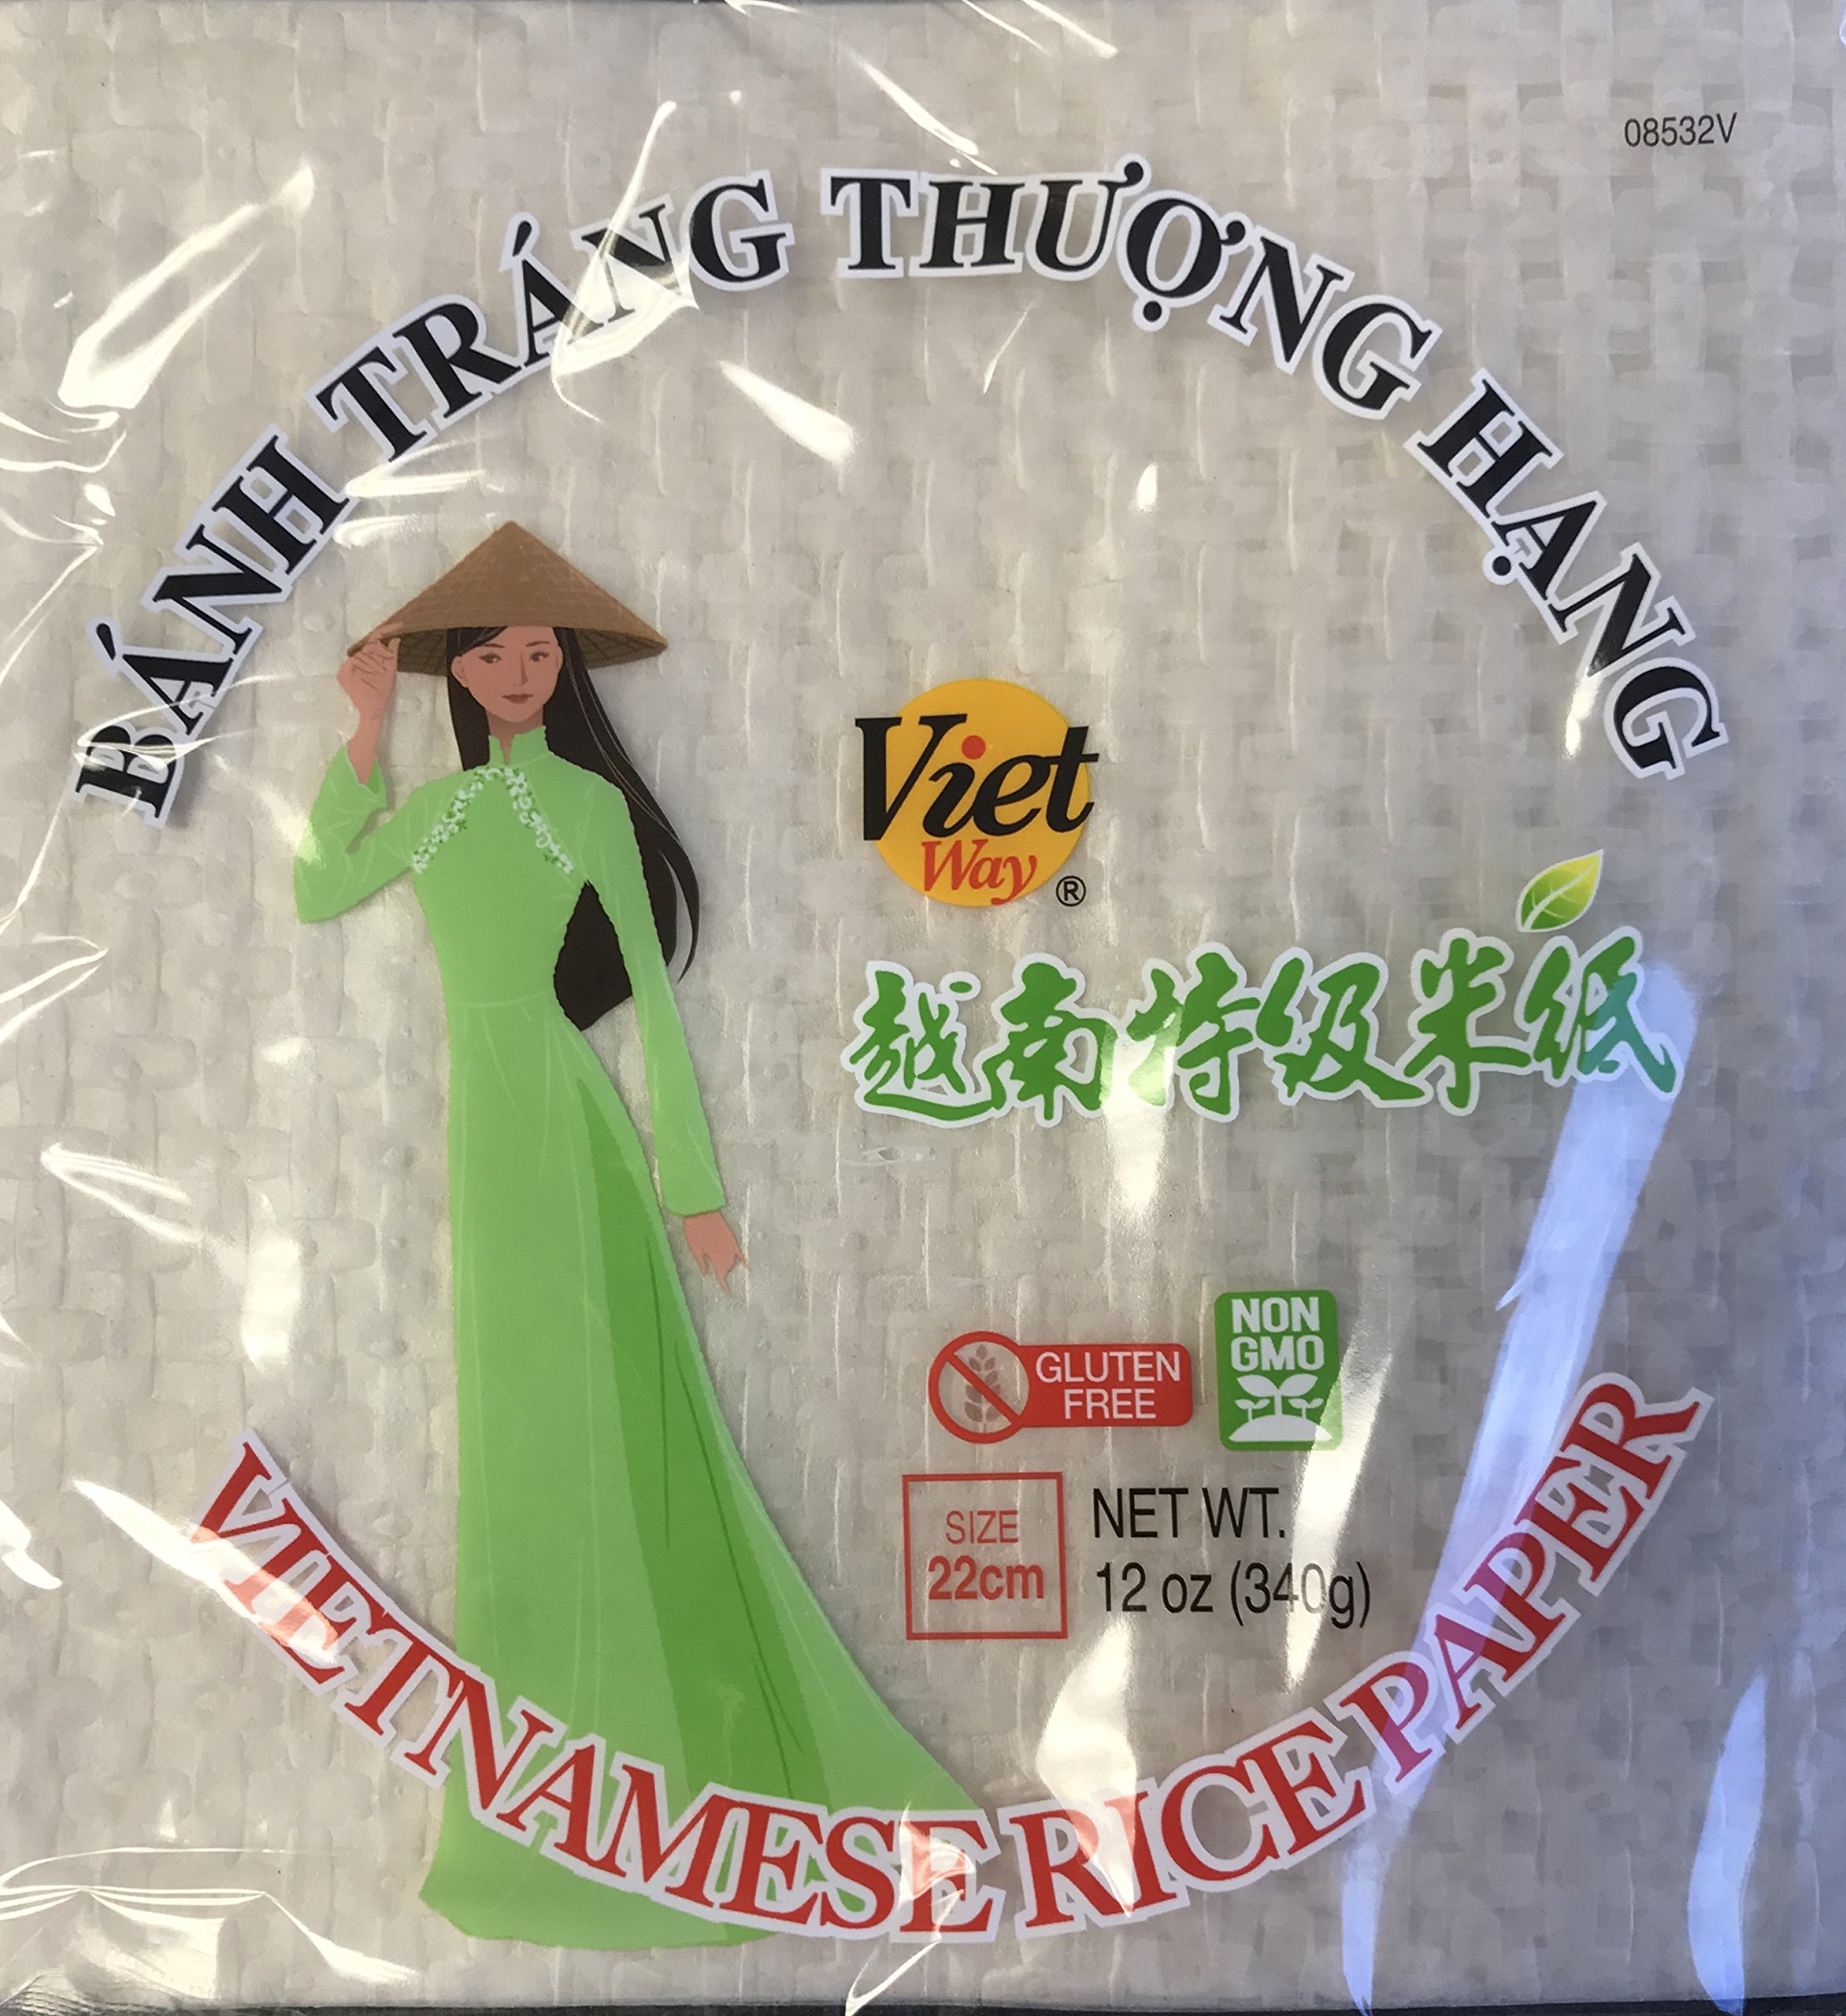 Viet Way Vietnamese Rice Paper 12 OZ Pack of 2 (22cm Square)